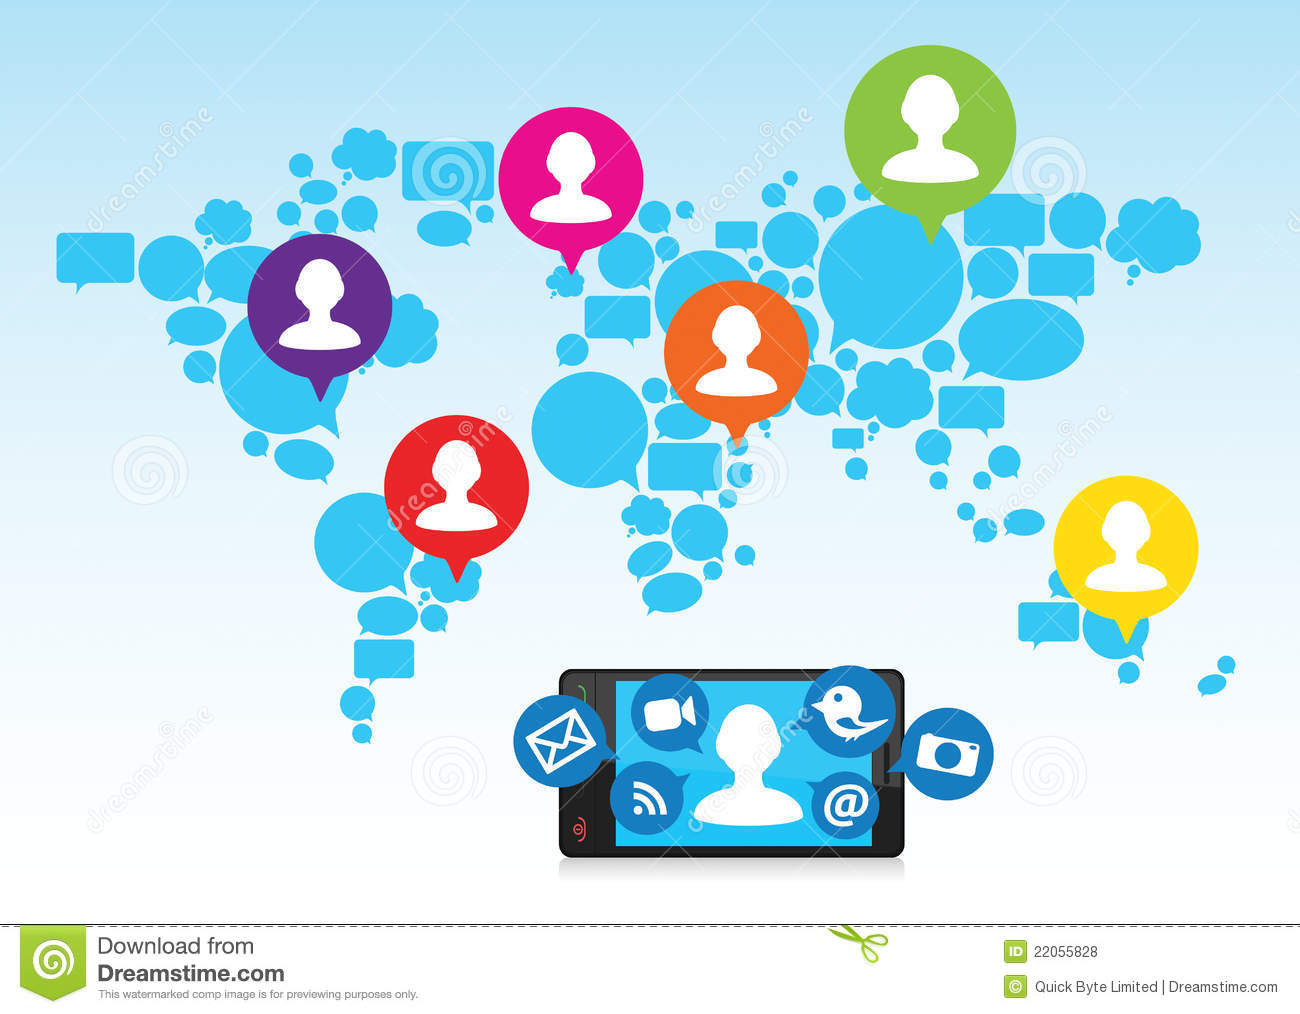 Social media cell phone photo clipart png black and white Social Media And Cell Phone Royalty Free Stock Photos - Image ... png black and white